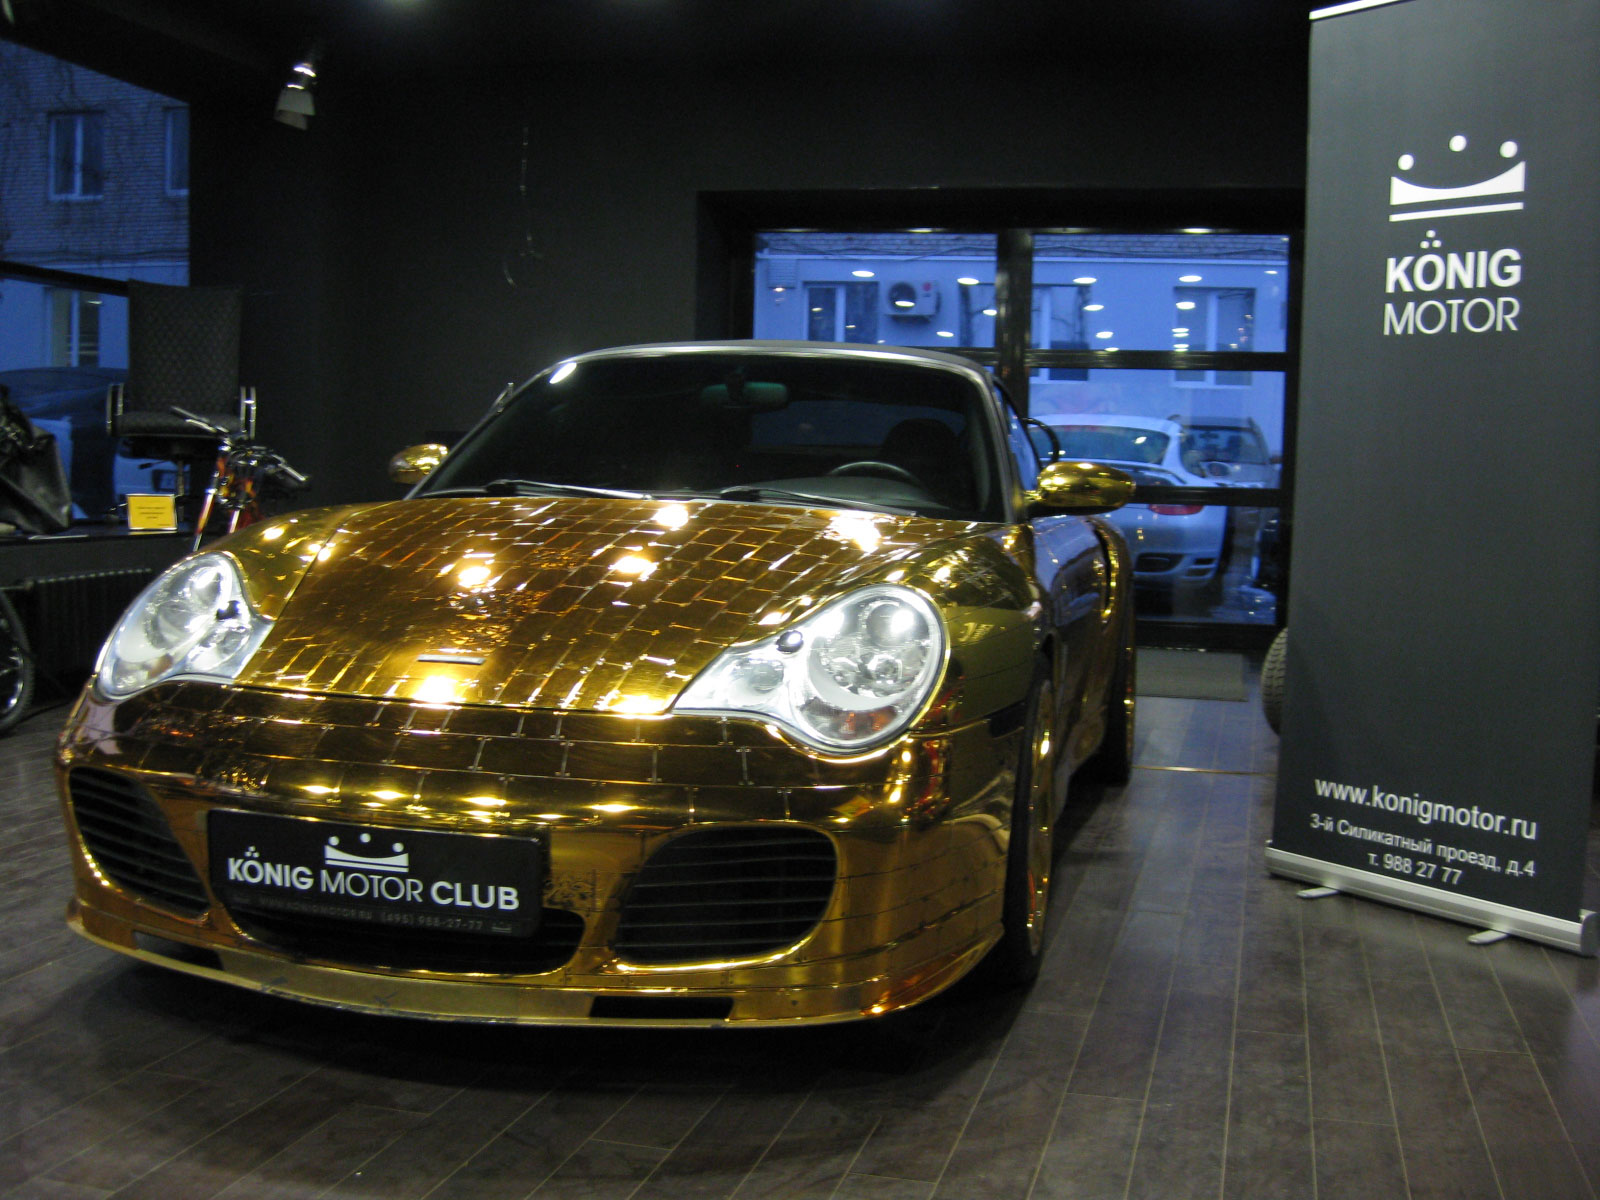 porsche 911 kopen with Buy A Gold Scaly Porsche 996 Turbo Cabriolet For 61000 on 914 2 in addition Nieuwe Citroen C4 Aircross likewise Test Michelin Ps4s 2017 additionally De Nieuwe Renault Grand Scenic 4436068 further 1660082.